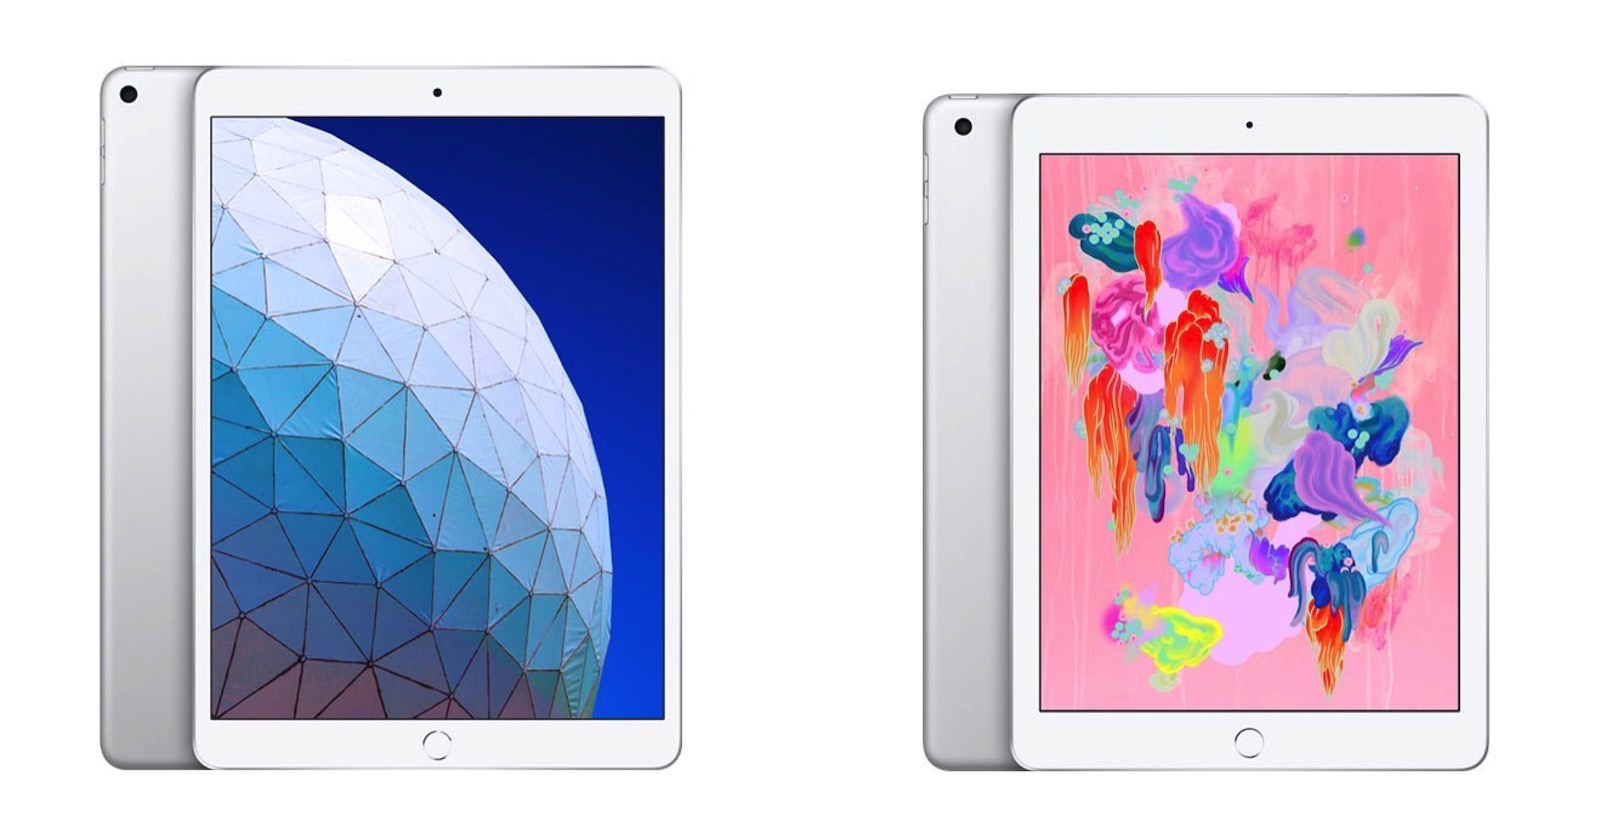 Ipad air vs ipad 6thgen